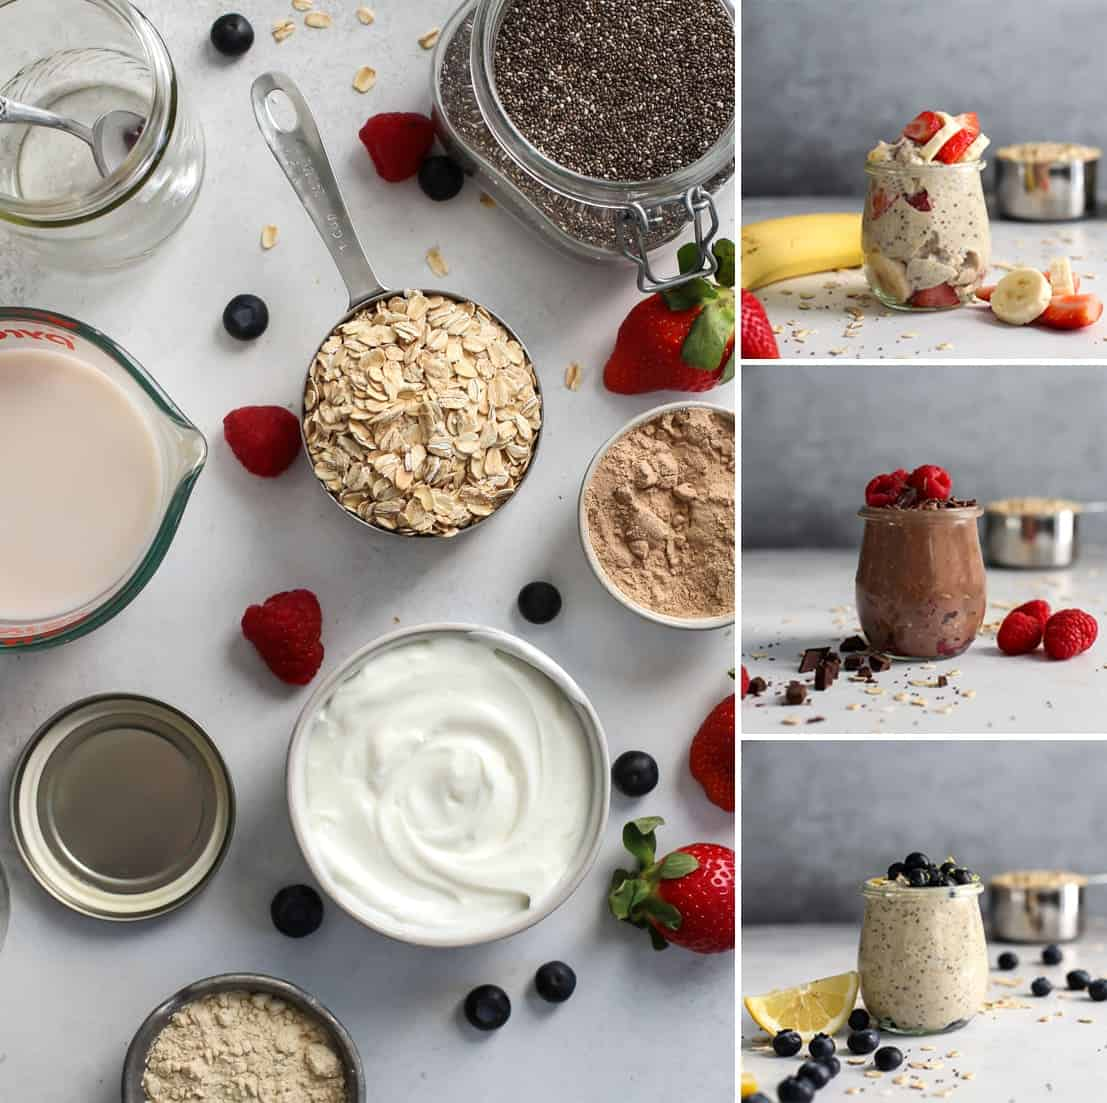 ingredients for overnight oats with berries three ways.